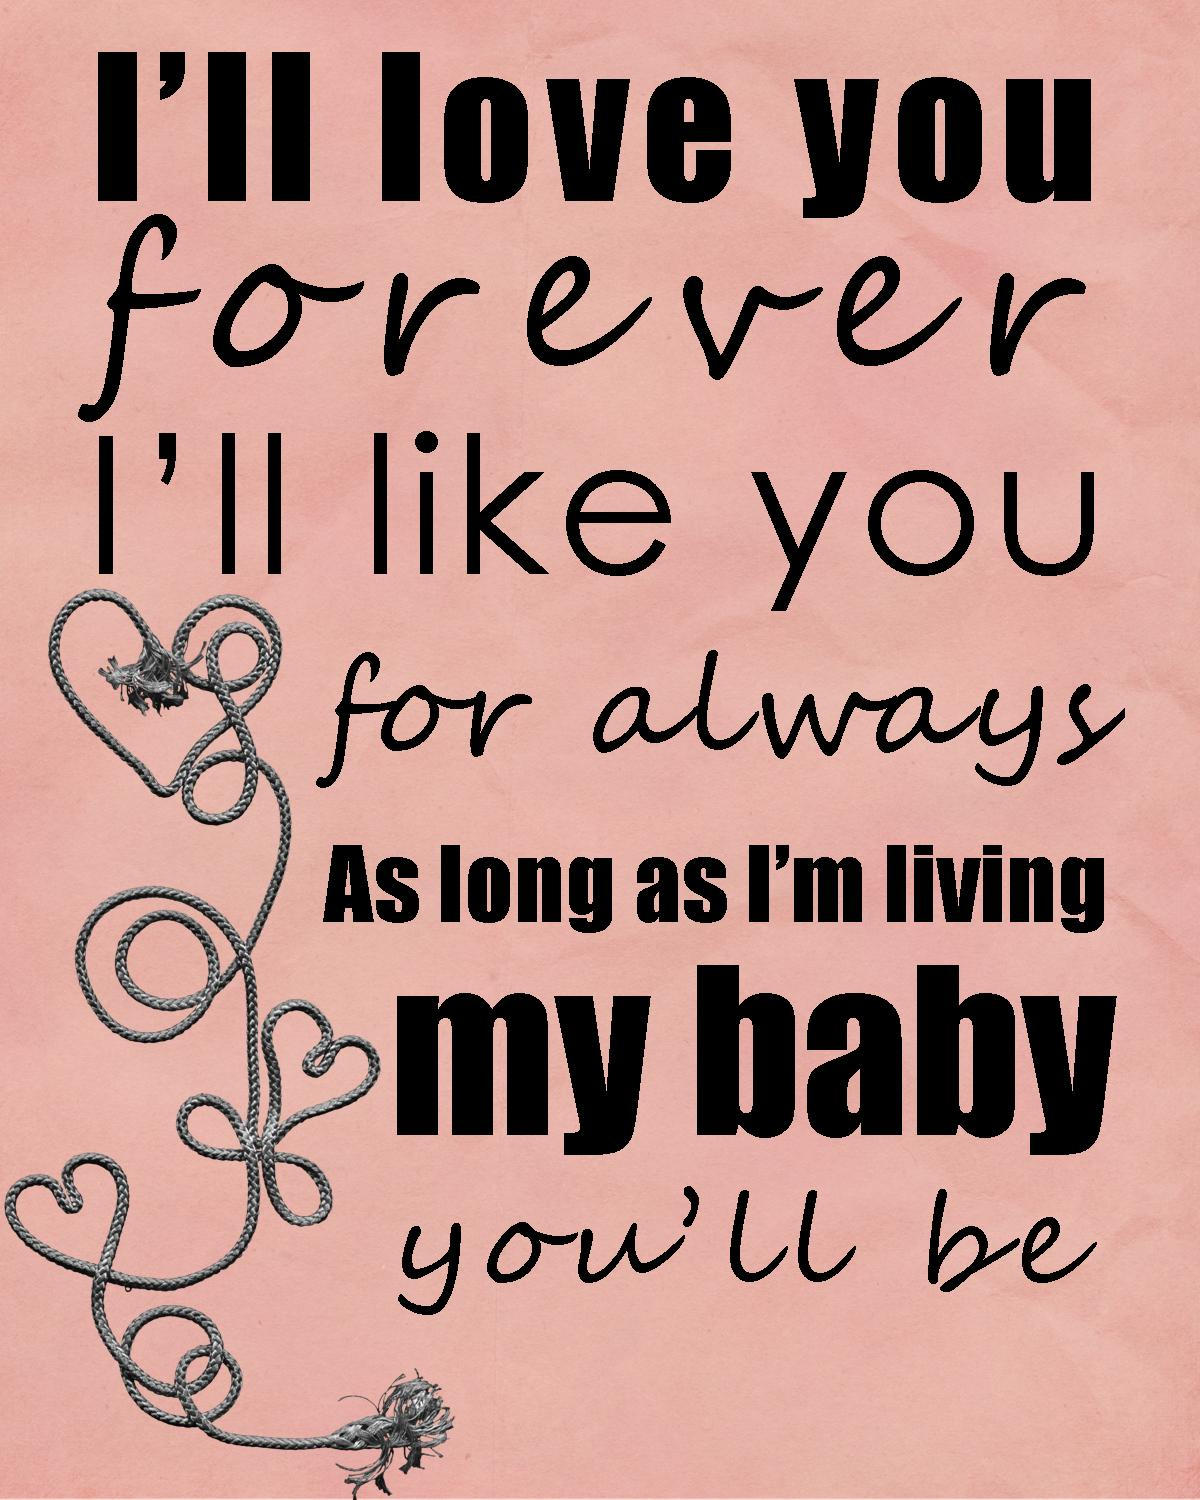 Funny I Love You Son Quotes : All you need is LOVE: Love You Forever